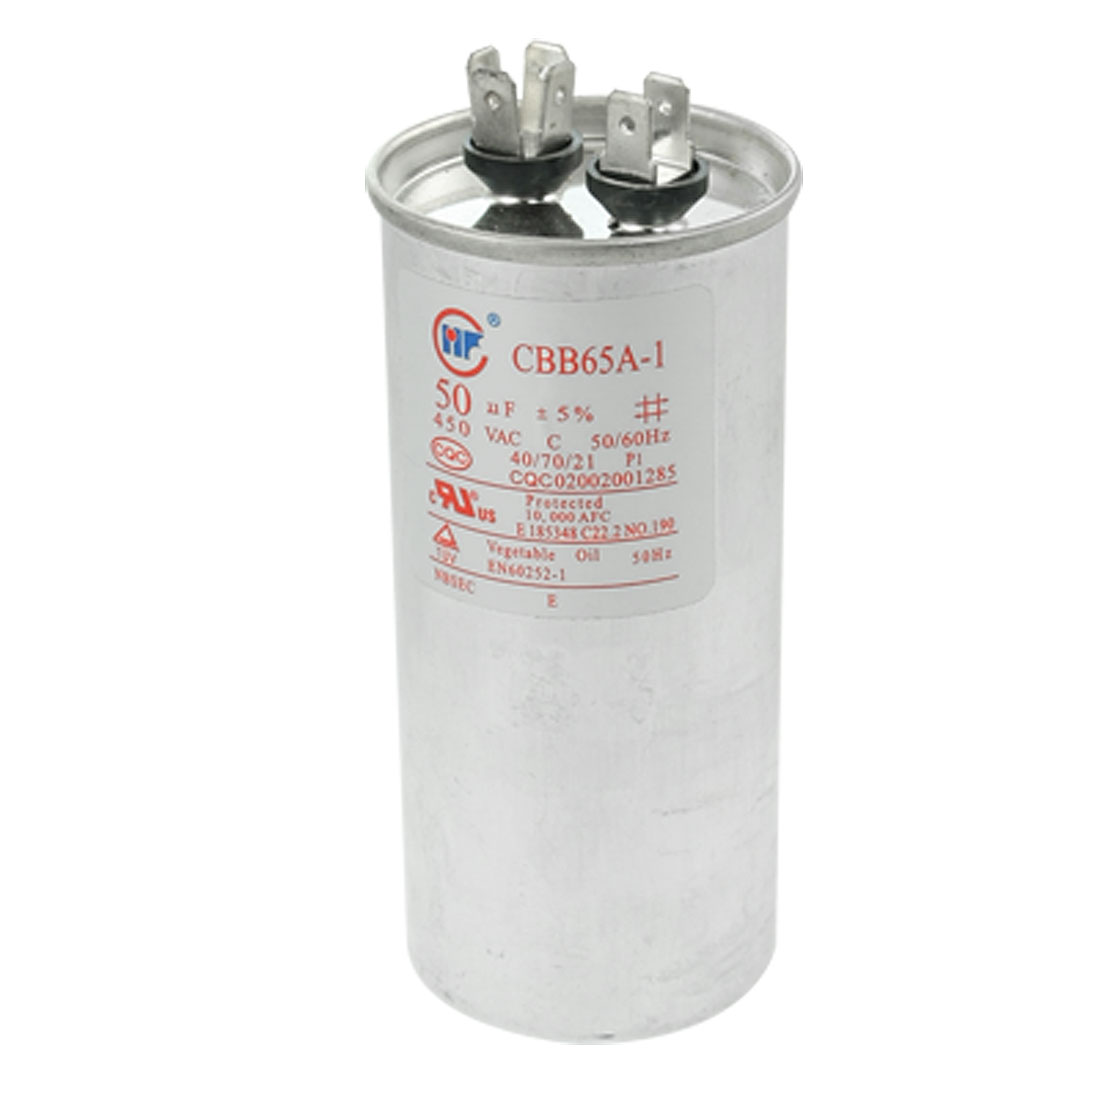 Air Conditioner CBB65A-1 50uF AC 450V 50/60Hz Metallized Polypropylene Film Motor Capacitor